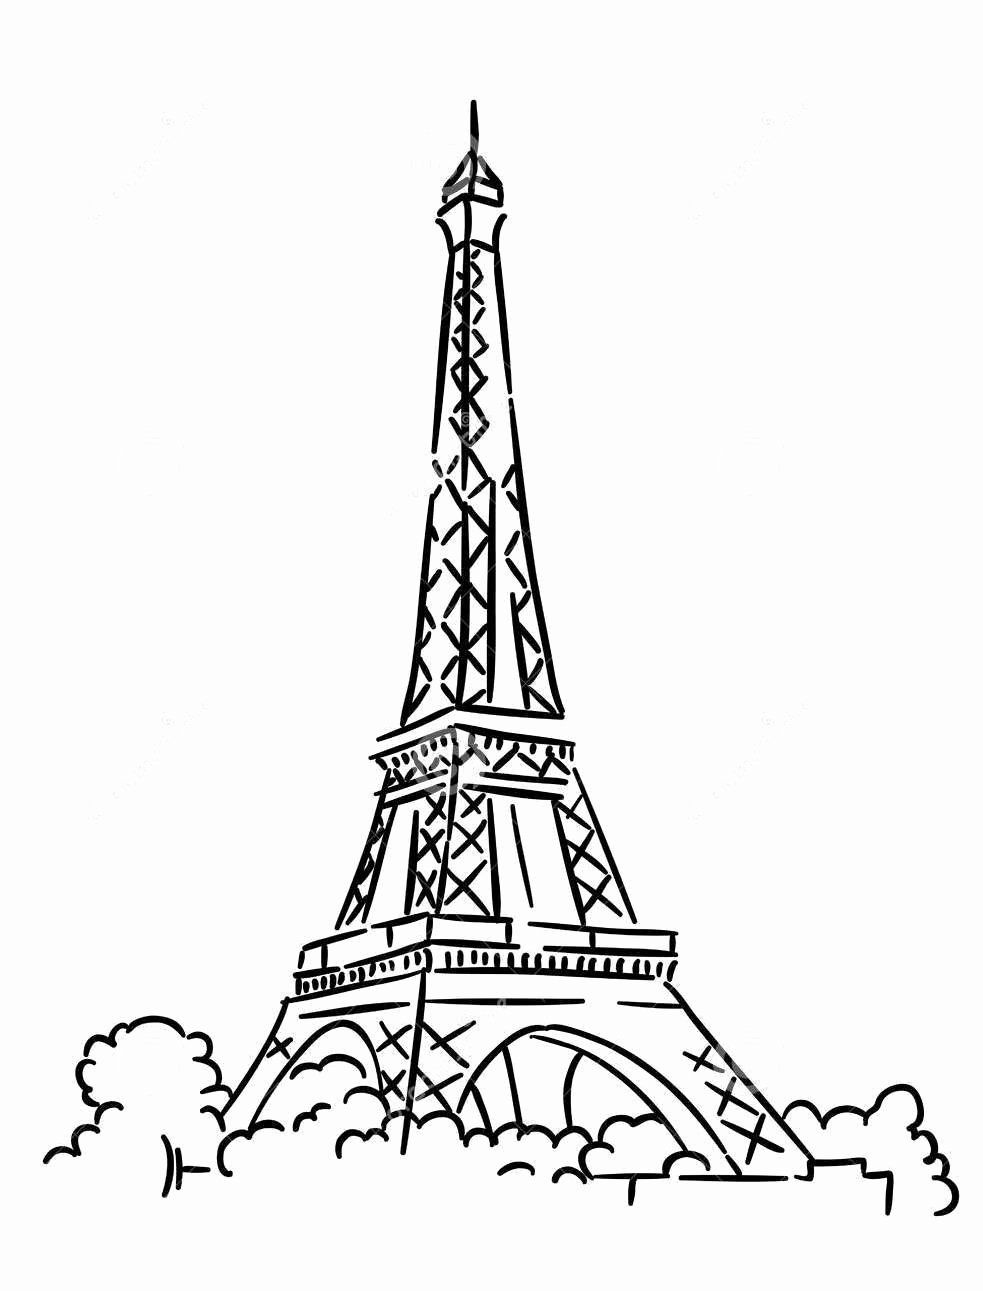 24 Amazing Image Of Eiffel Tower Coloring Page Davemelillo Com Coloring Pages Eiffel Tower Coloring Pages Inspirational